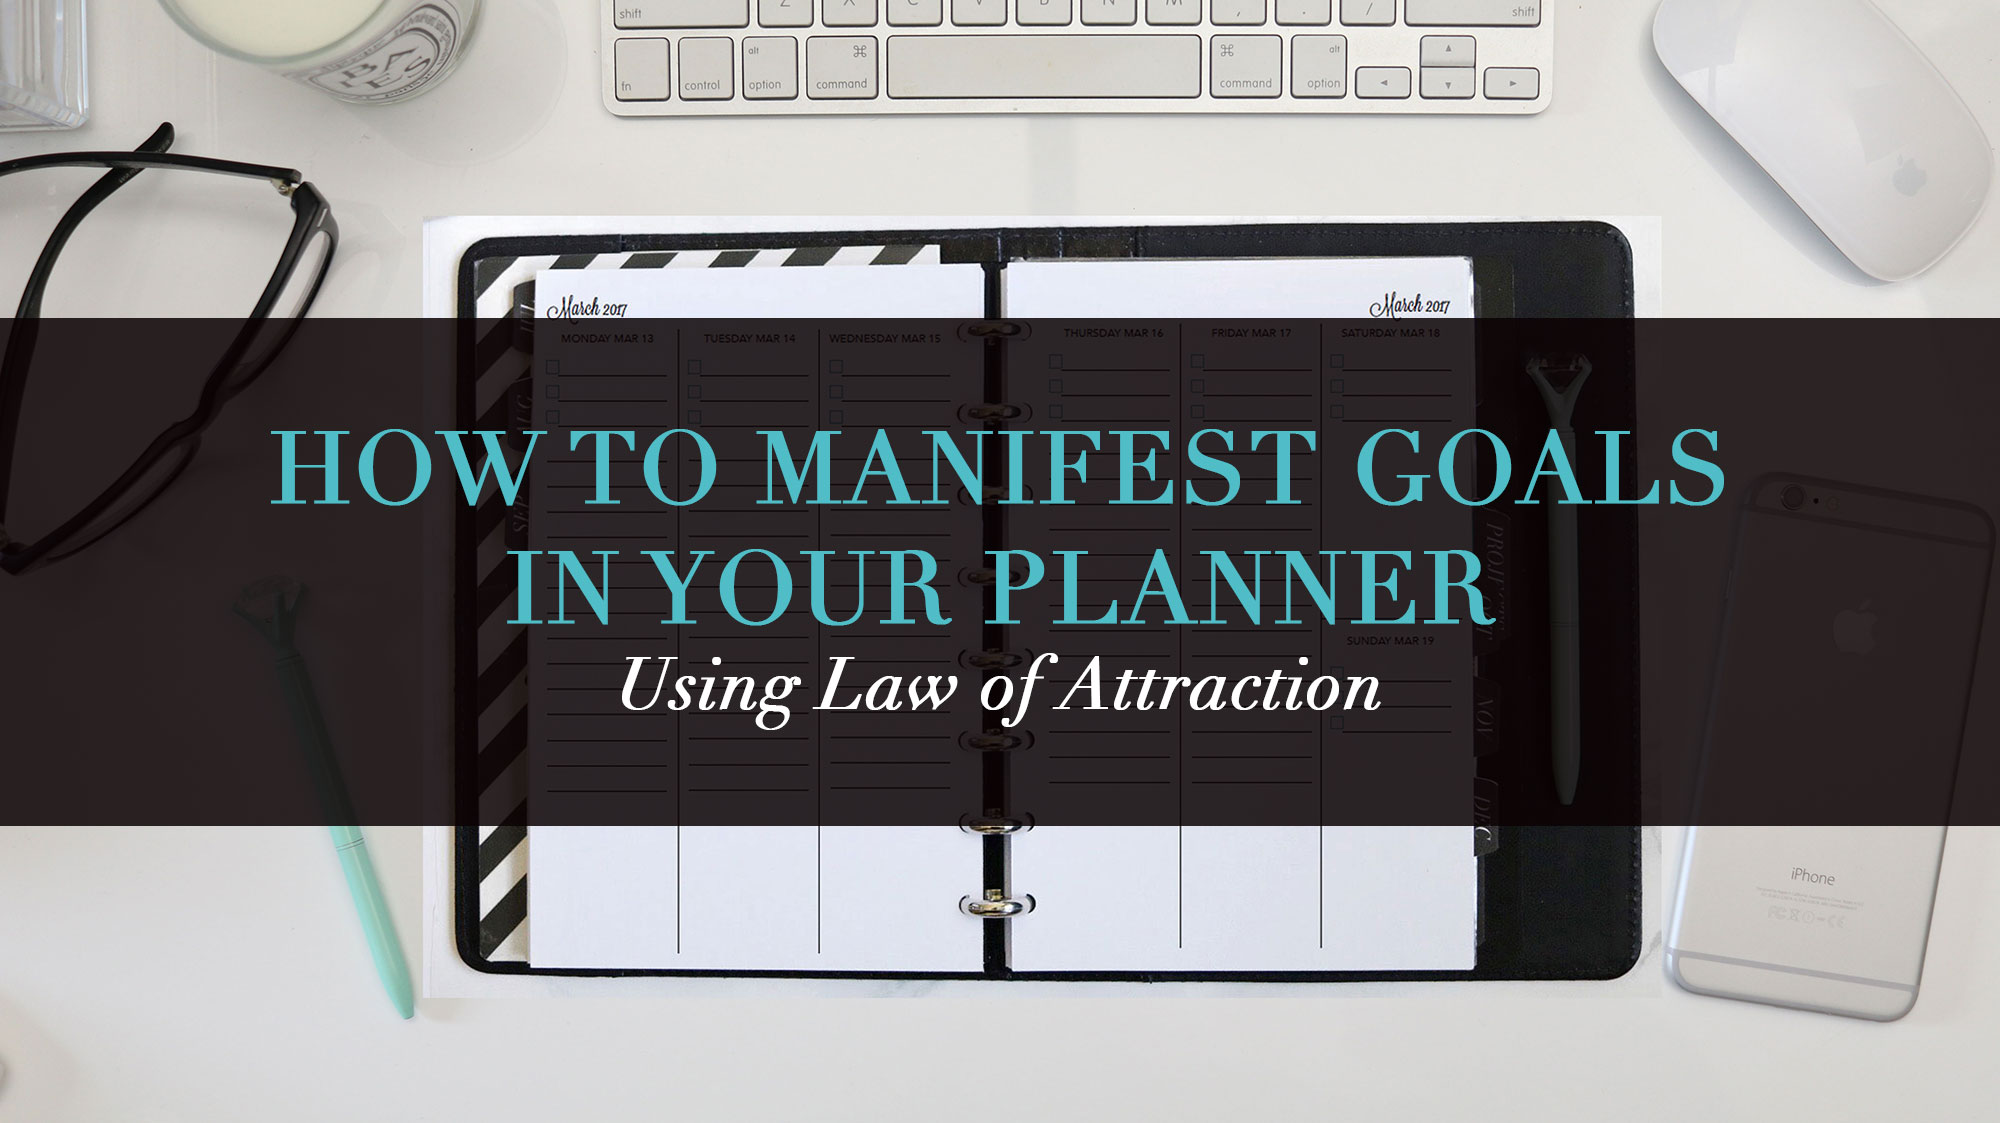 How To Manifest Goals In Your Planner Using Law Of